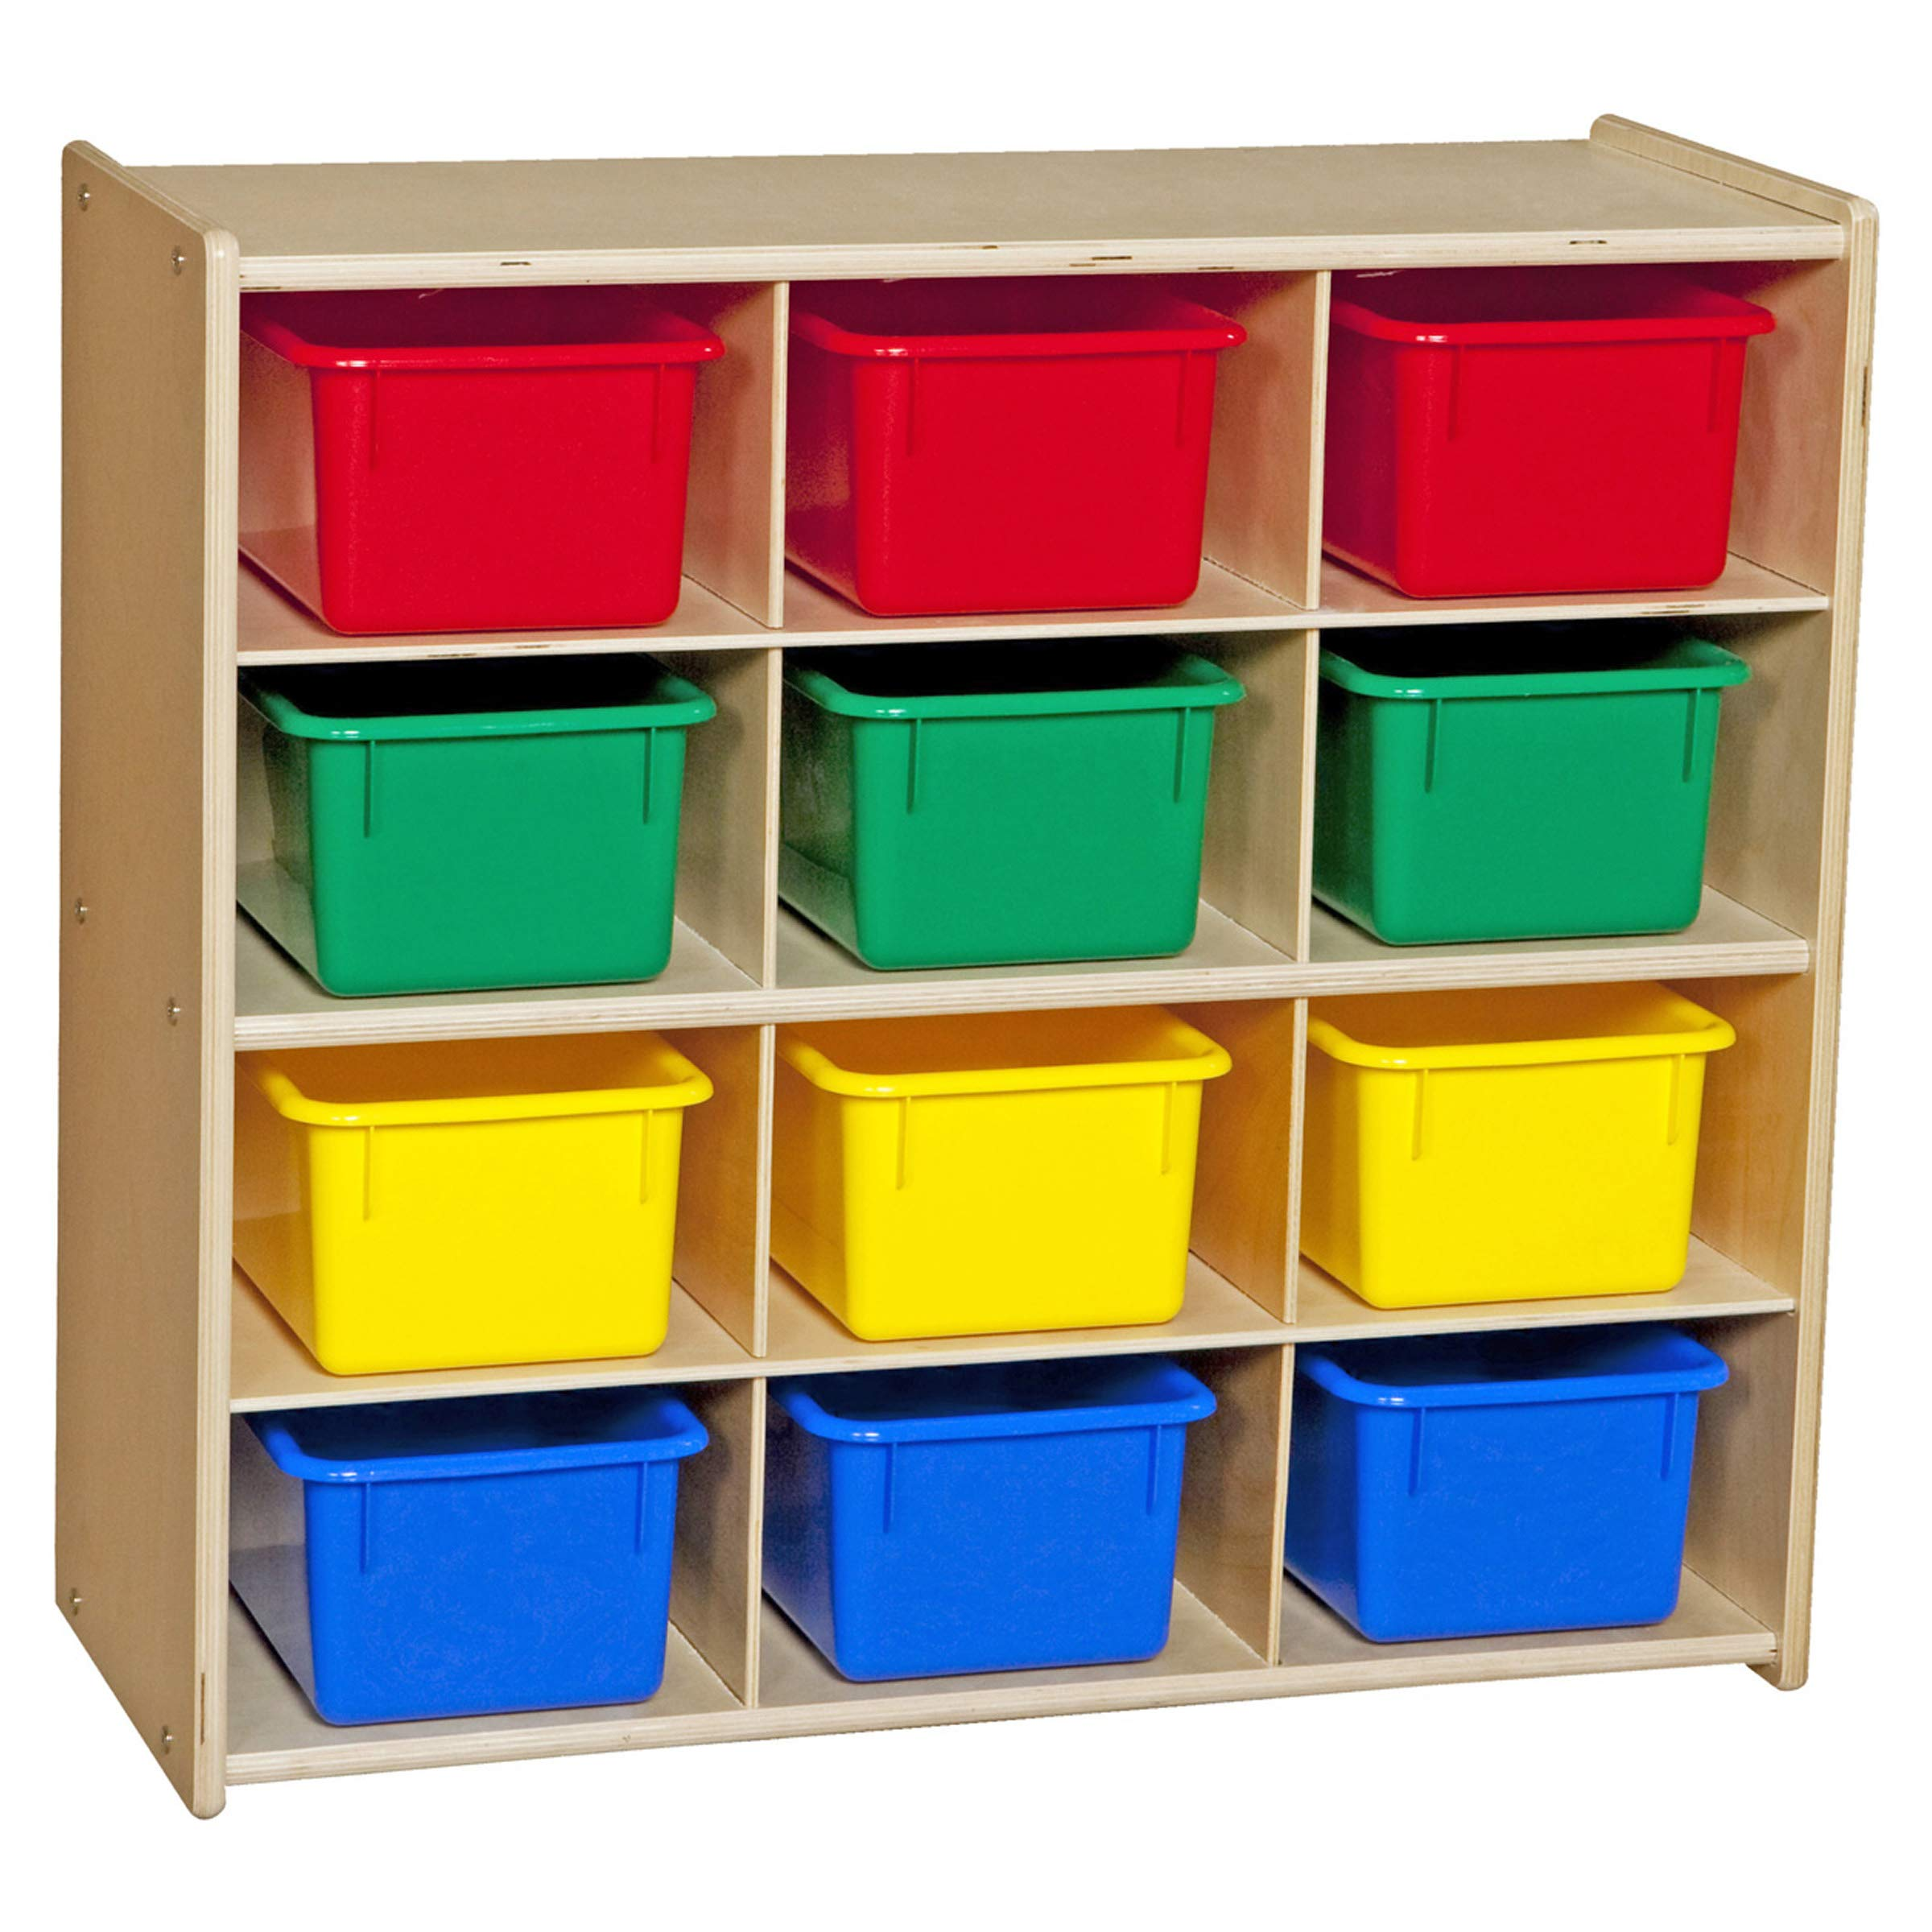 Contender Baltic Birch 12-Cubby Storage Unit w/Colorful Tubs - Assembled by Contender